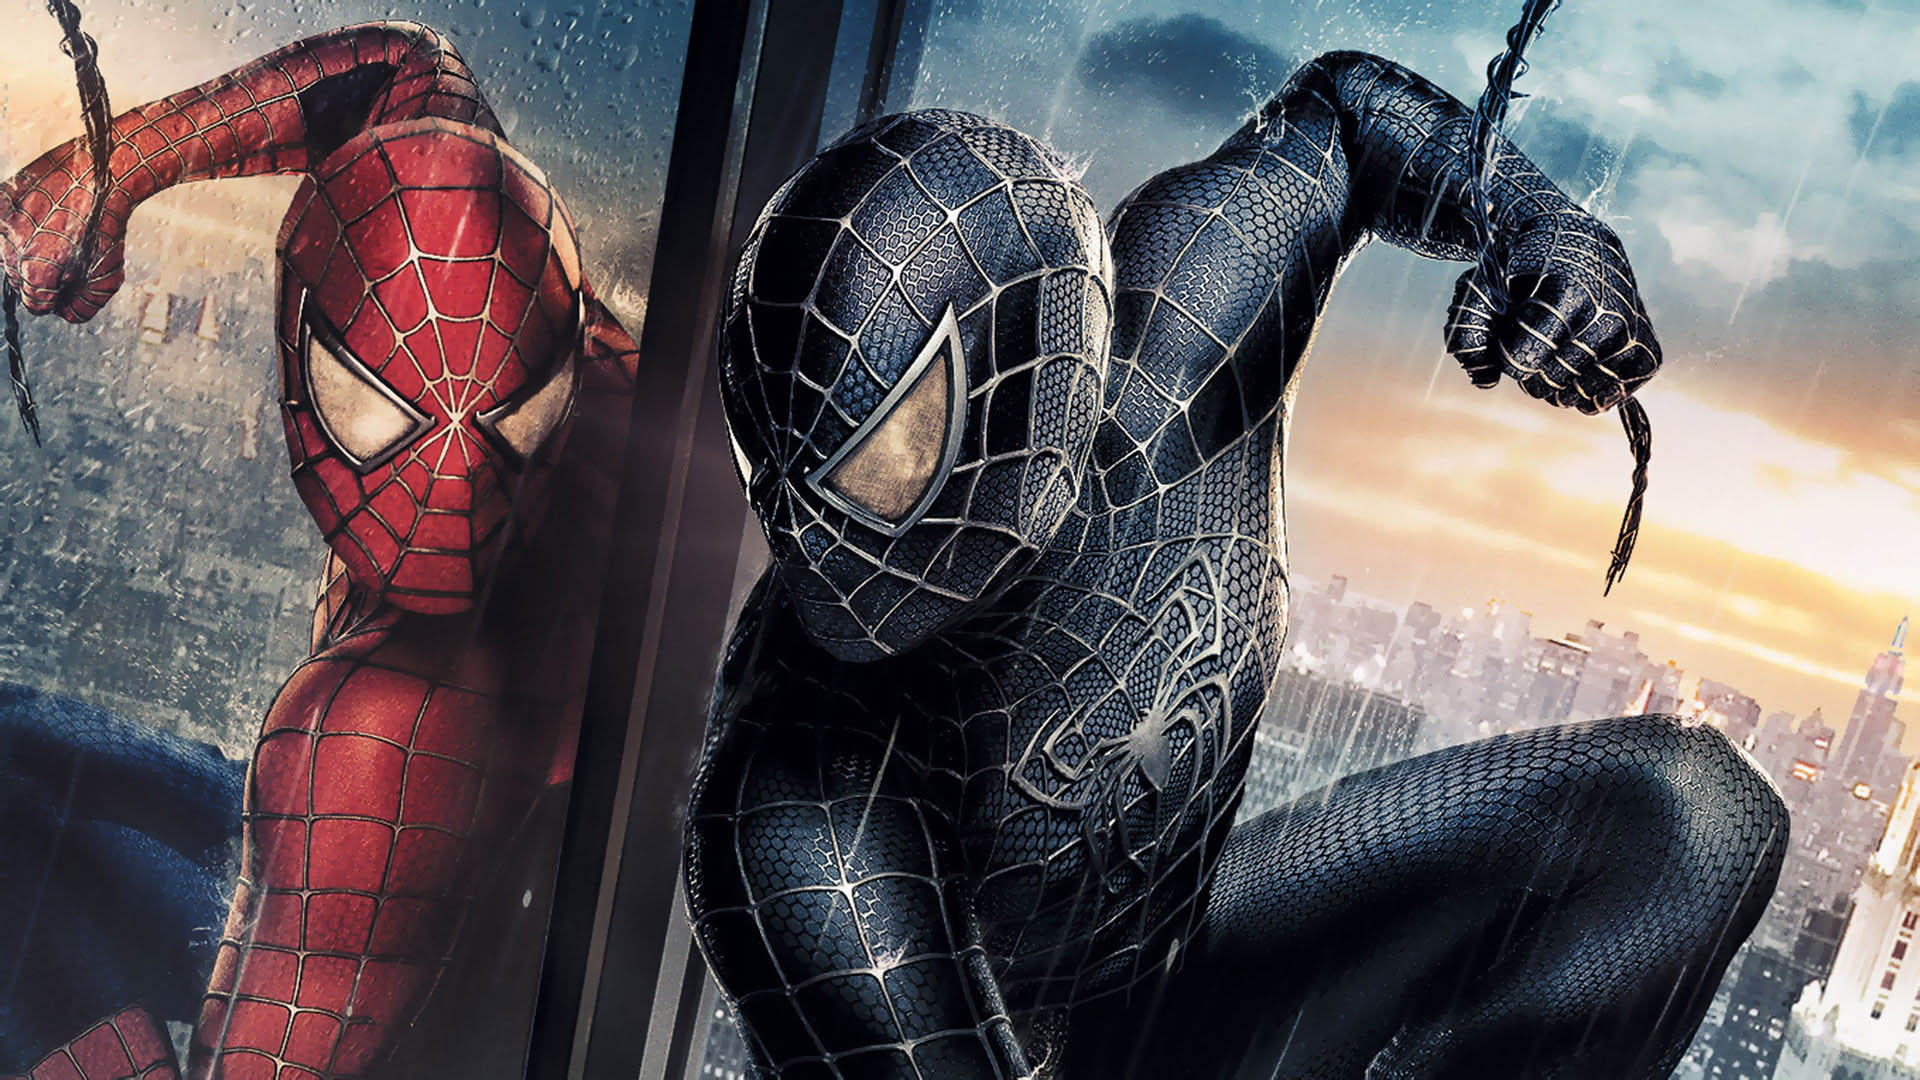 Spider Man 3 HD 1920x1080 Wallpapers 1920x1080 Wallpapers Pictures 1920x1080